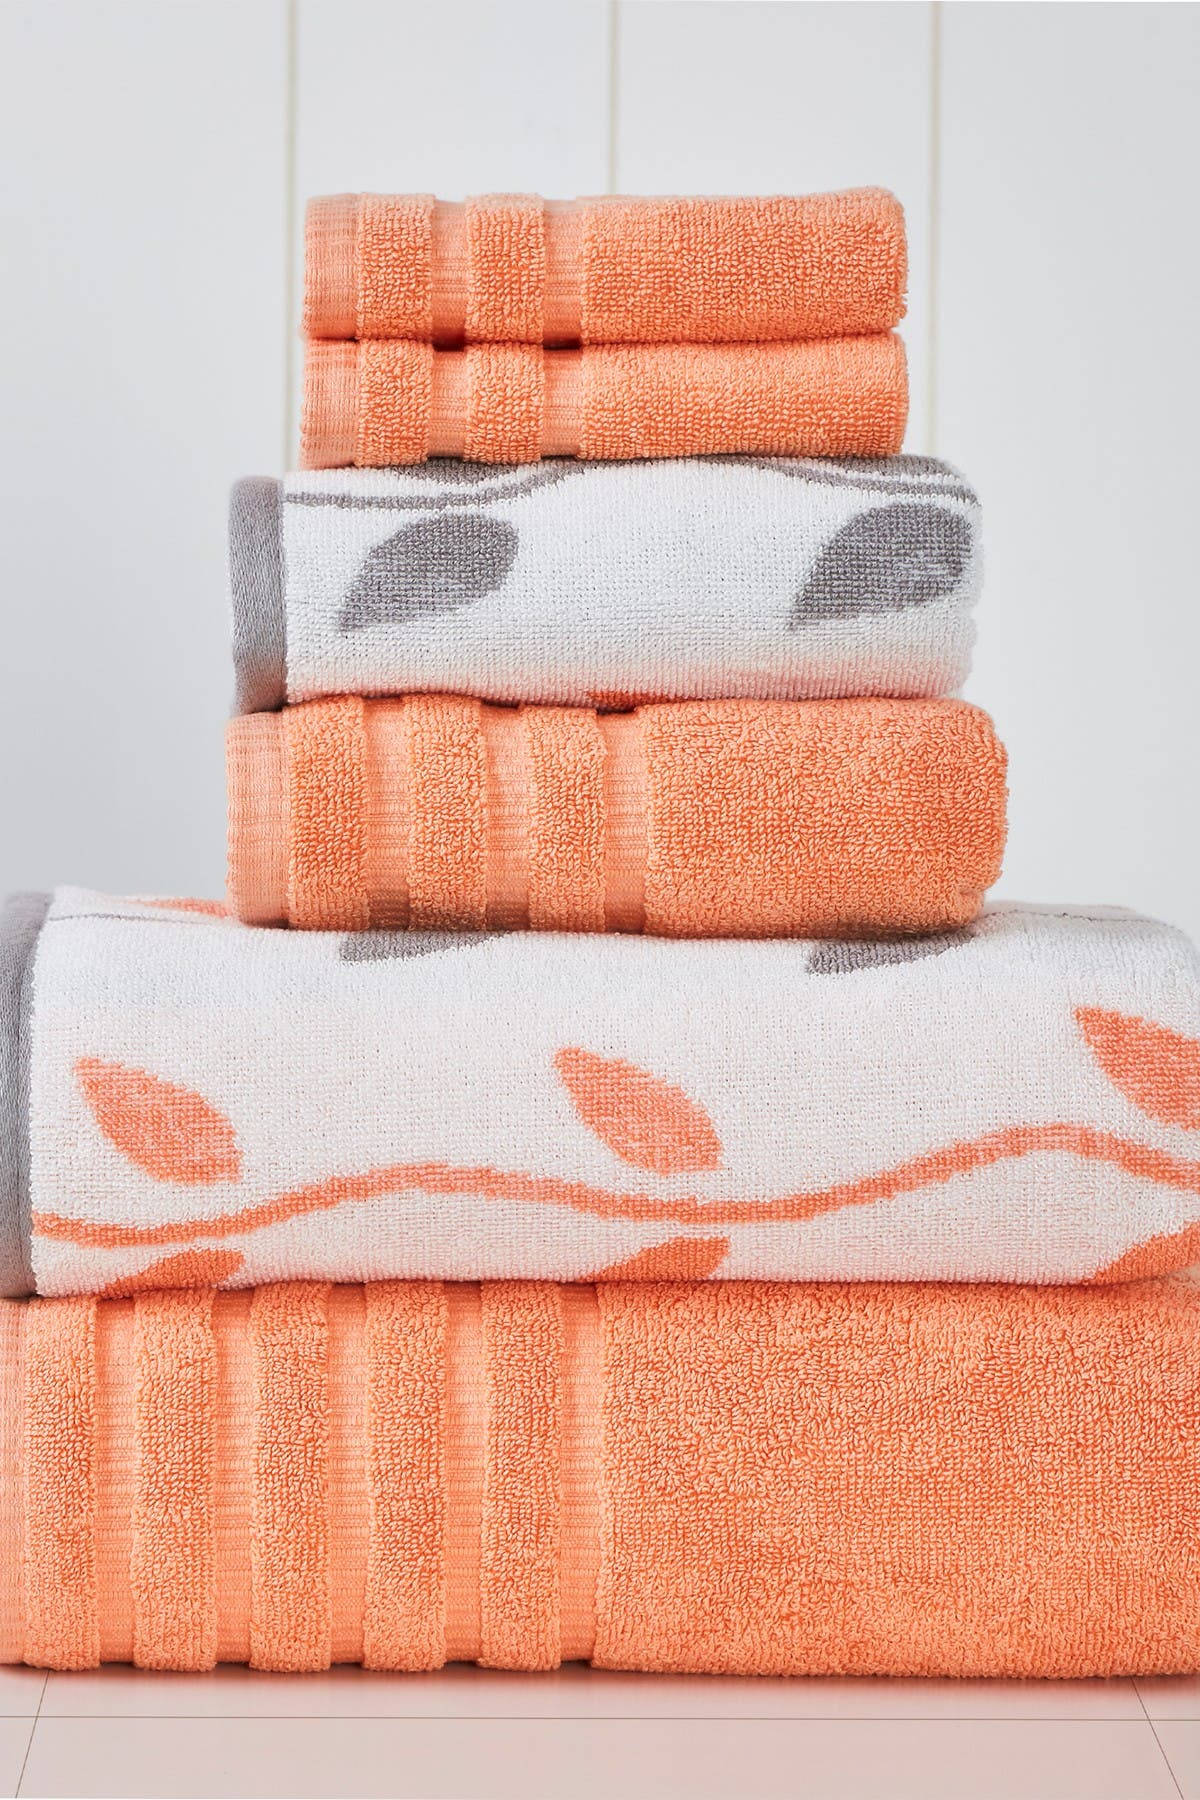 Image of Modern Threads Yard Dyed Towel 6-Piece Set - Organic Vines Coral